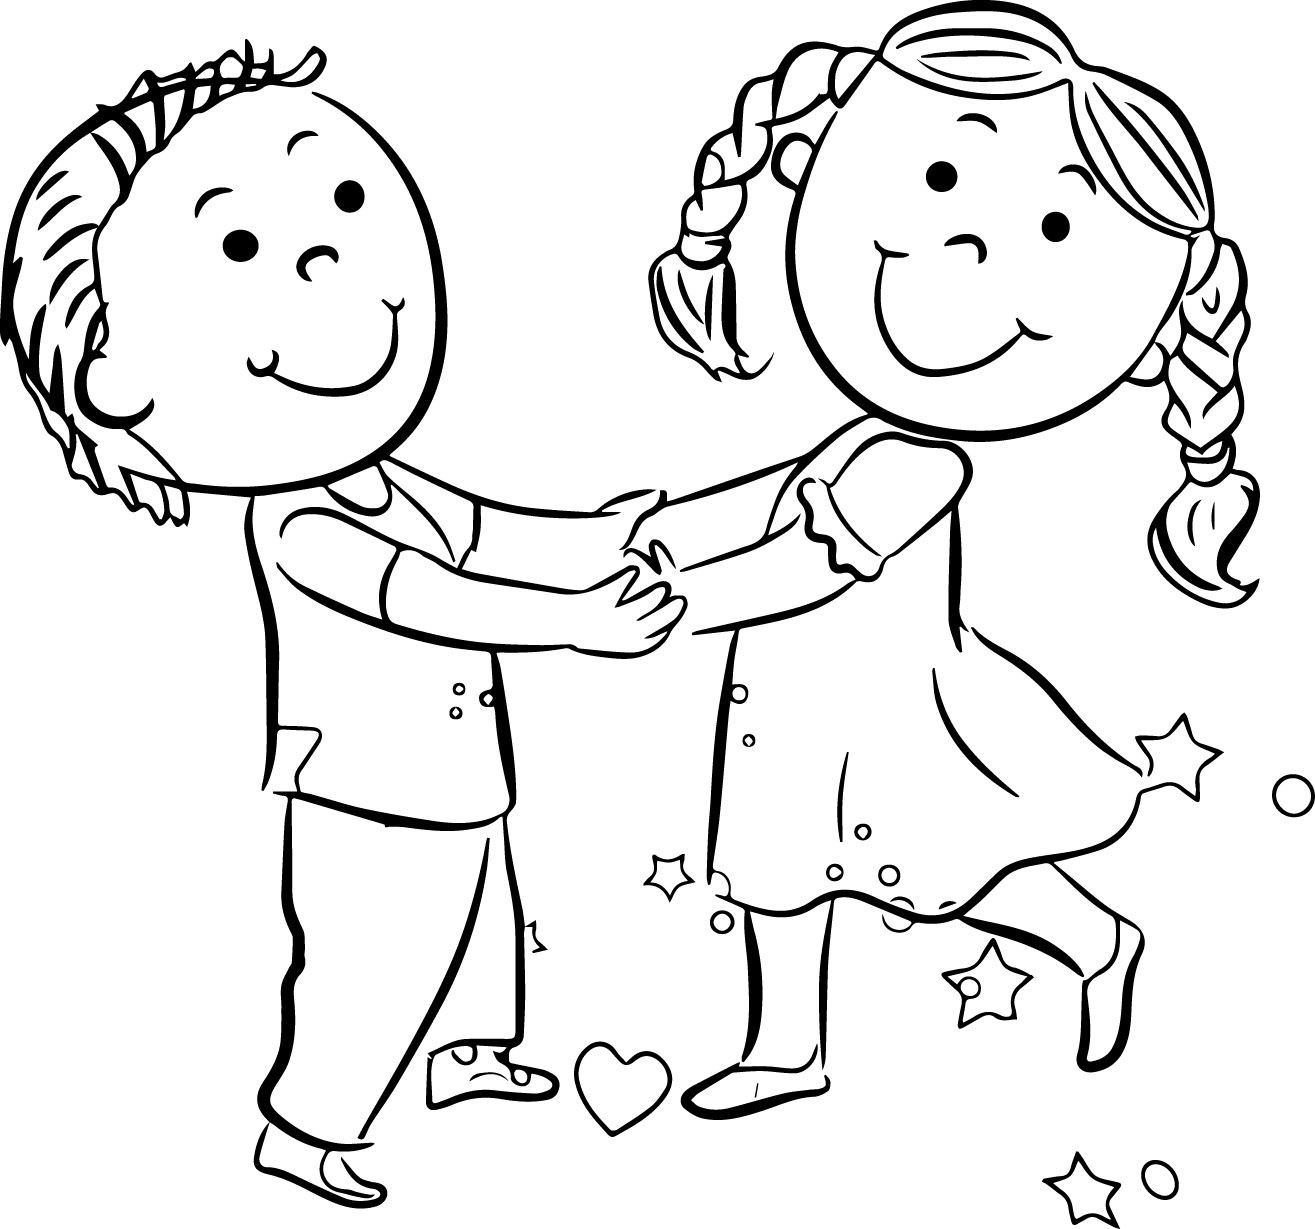 Coloring Pages For Kids Games  Children Coloring Pages wecoloringpage